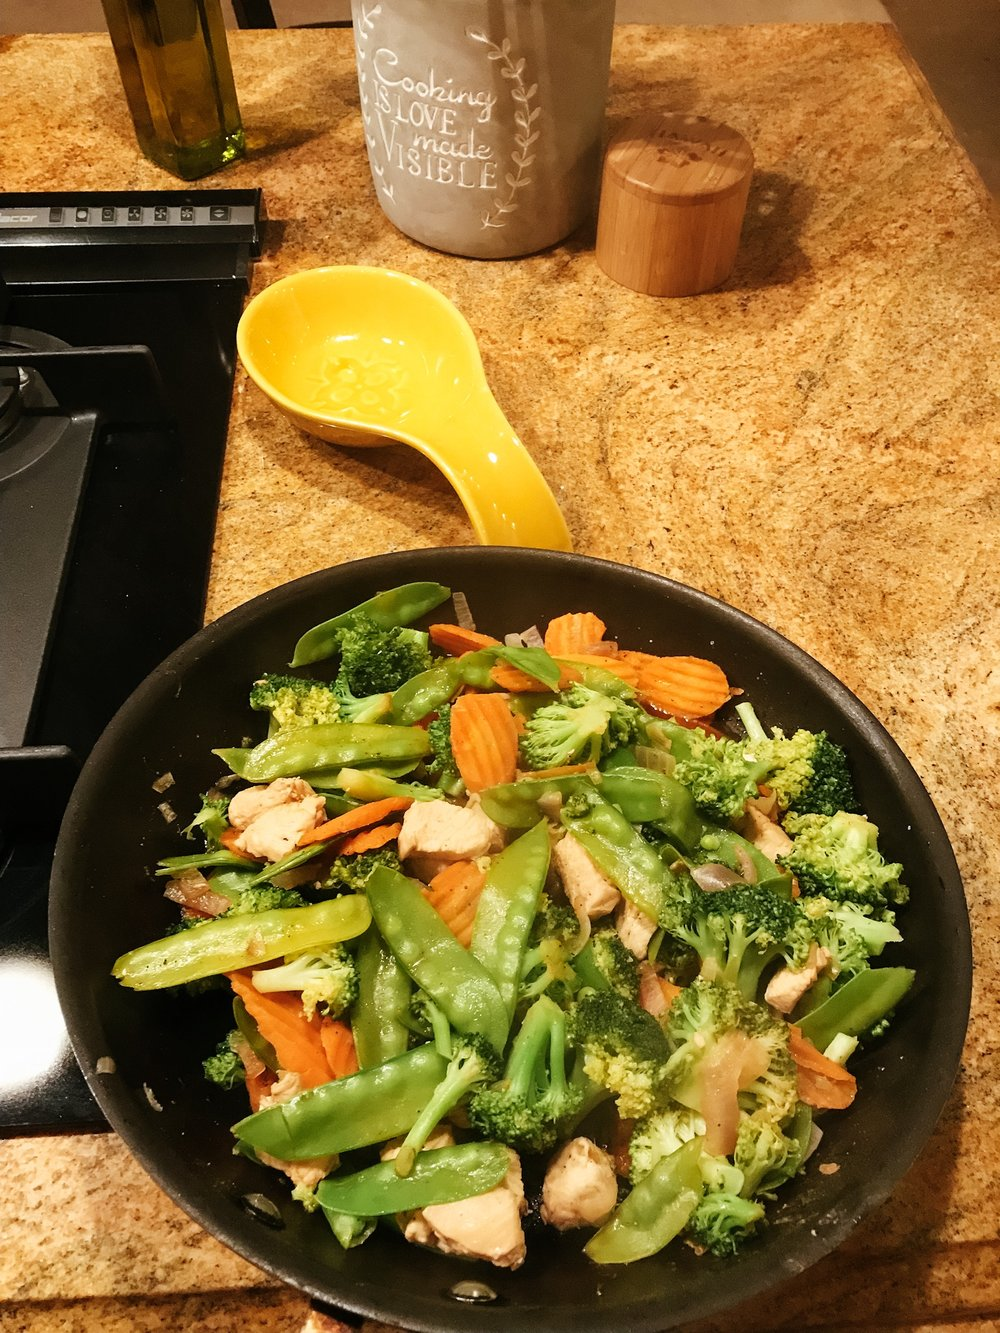 All cooked up - We like our veggies soft and not too much liquid.  Here is the finished look